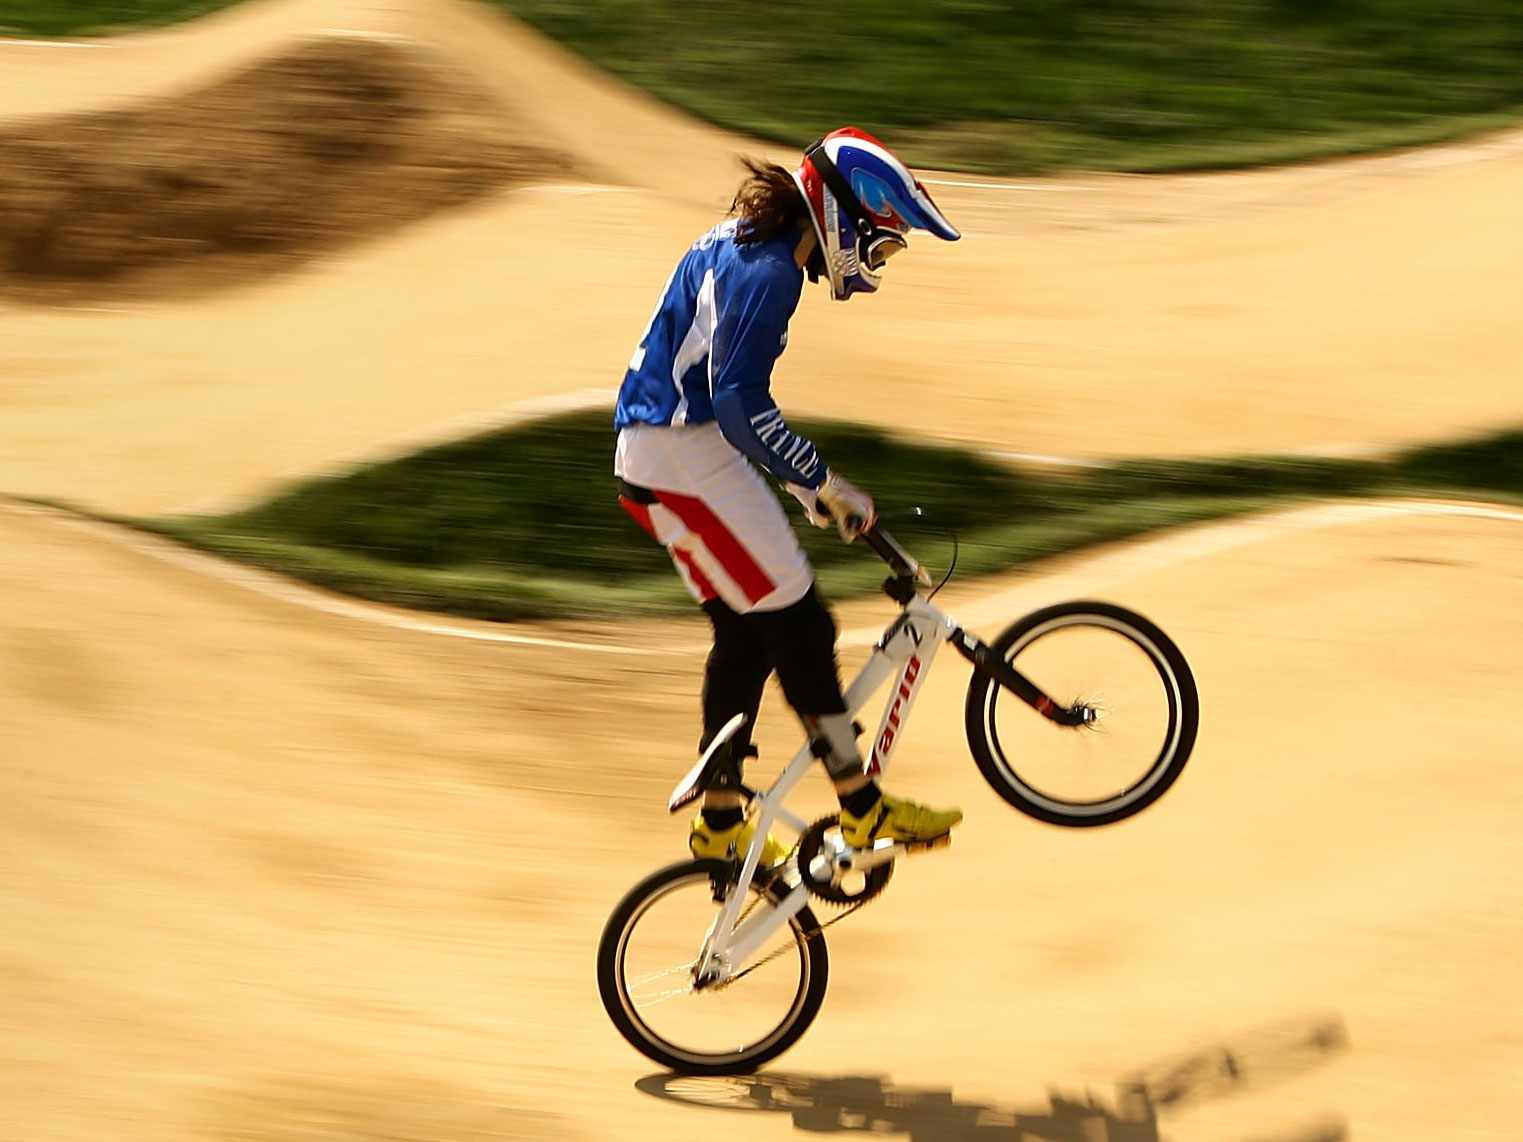 Chippenham Town Council has approved the idea of an Olympic-sized BMX track.